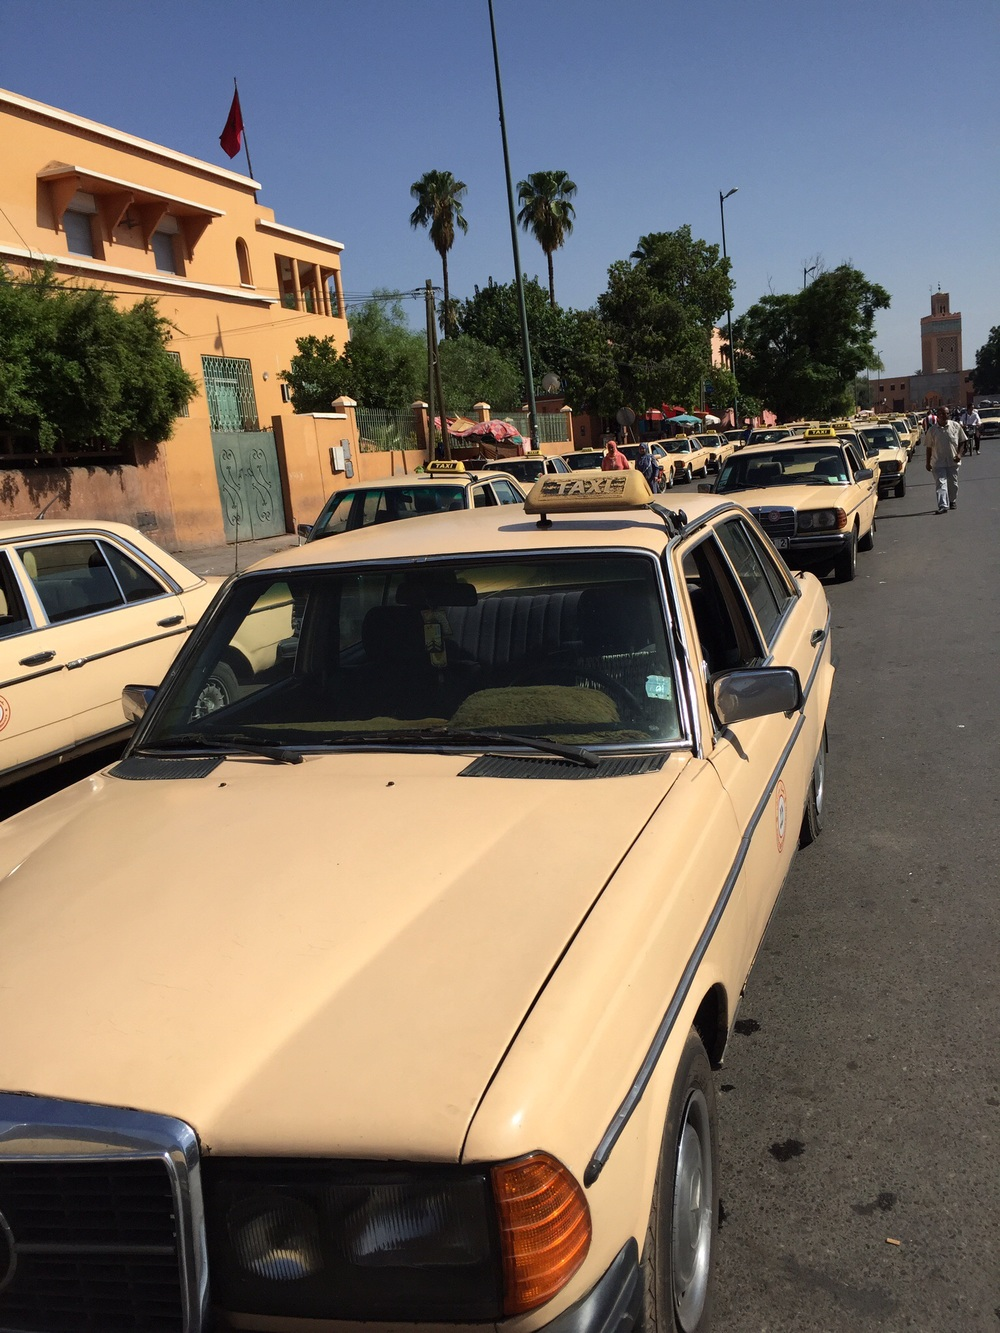 A grand taxi (AKA Moroccan death trap)